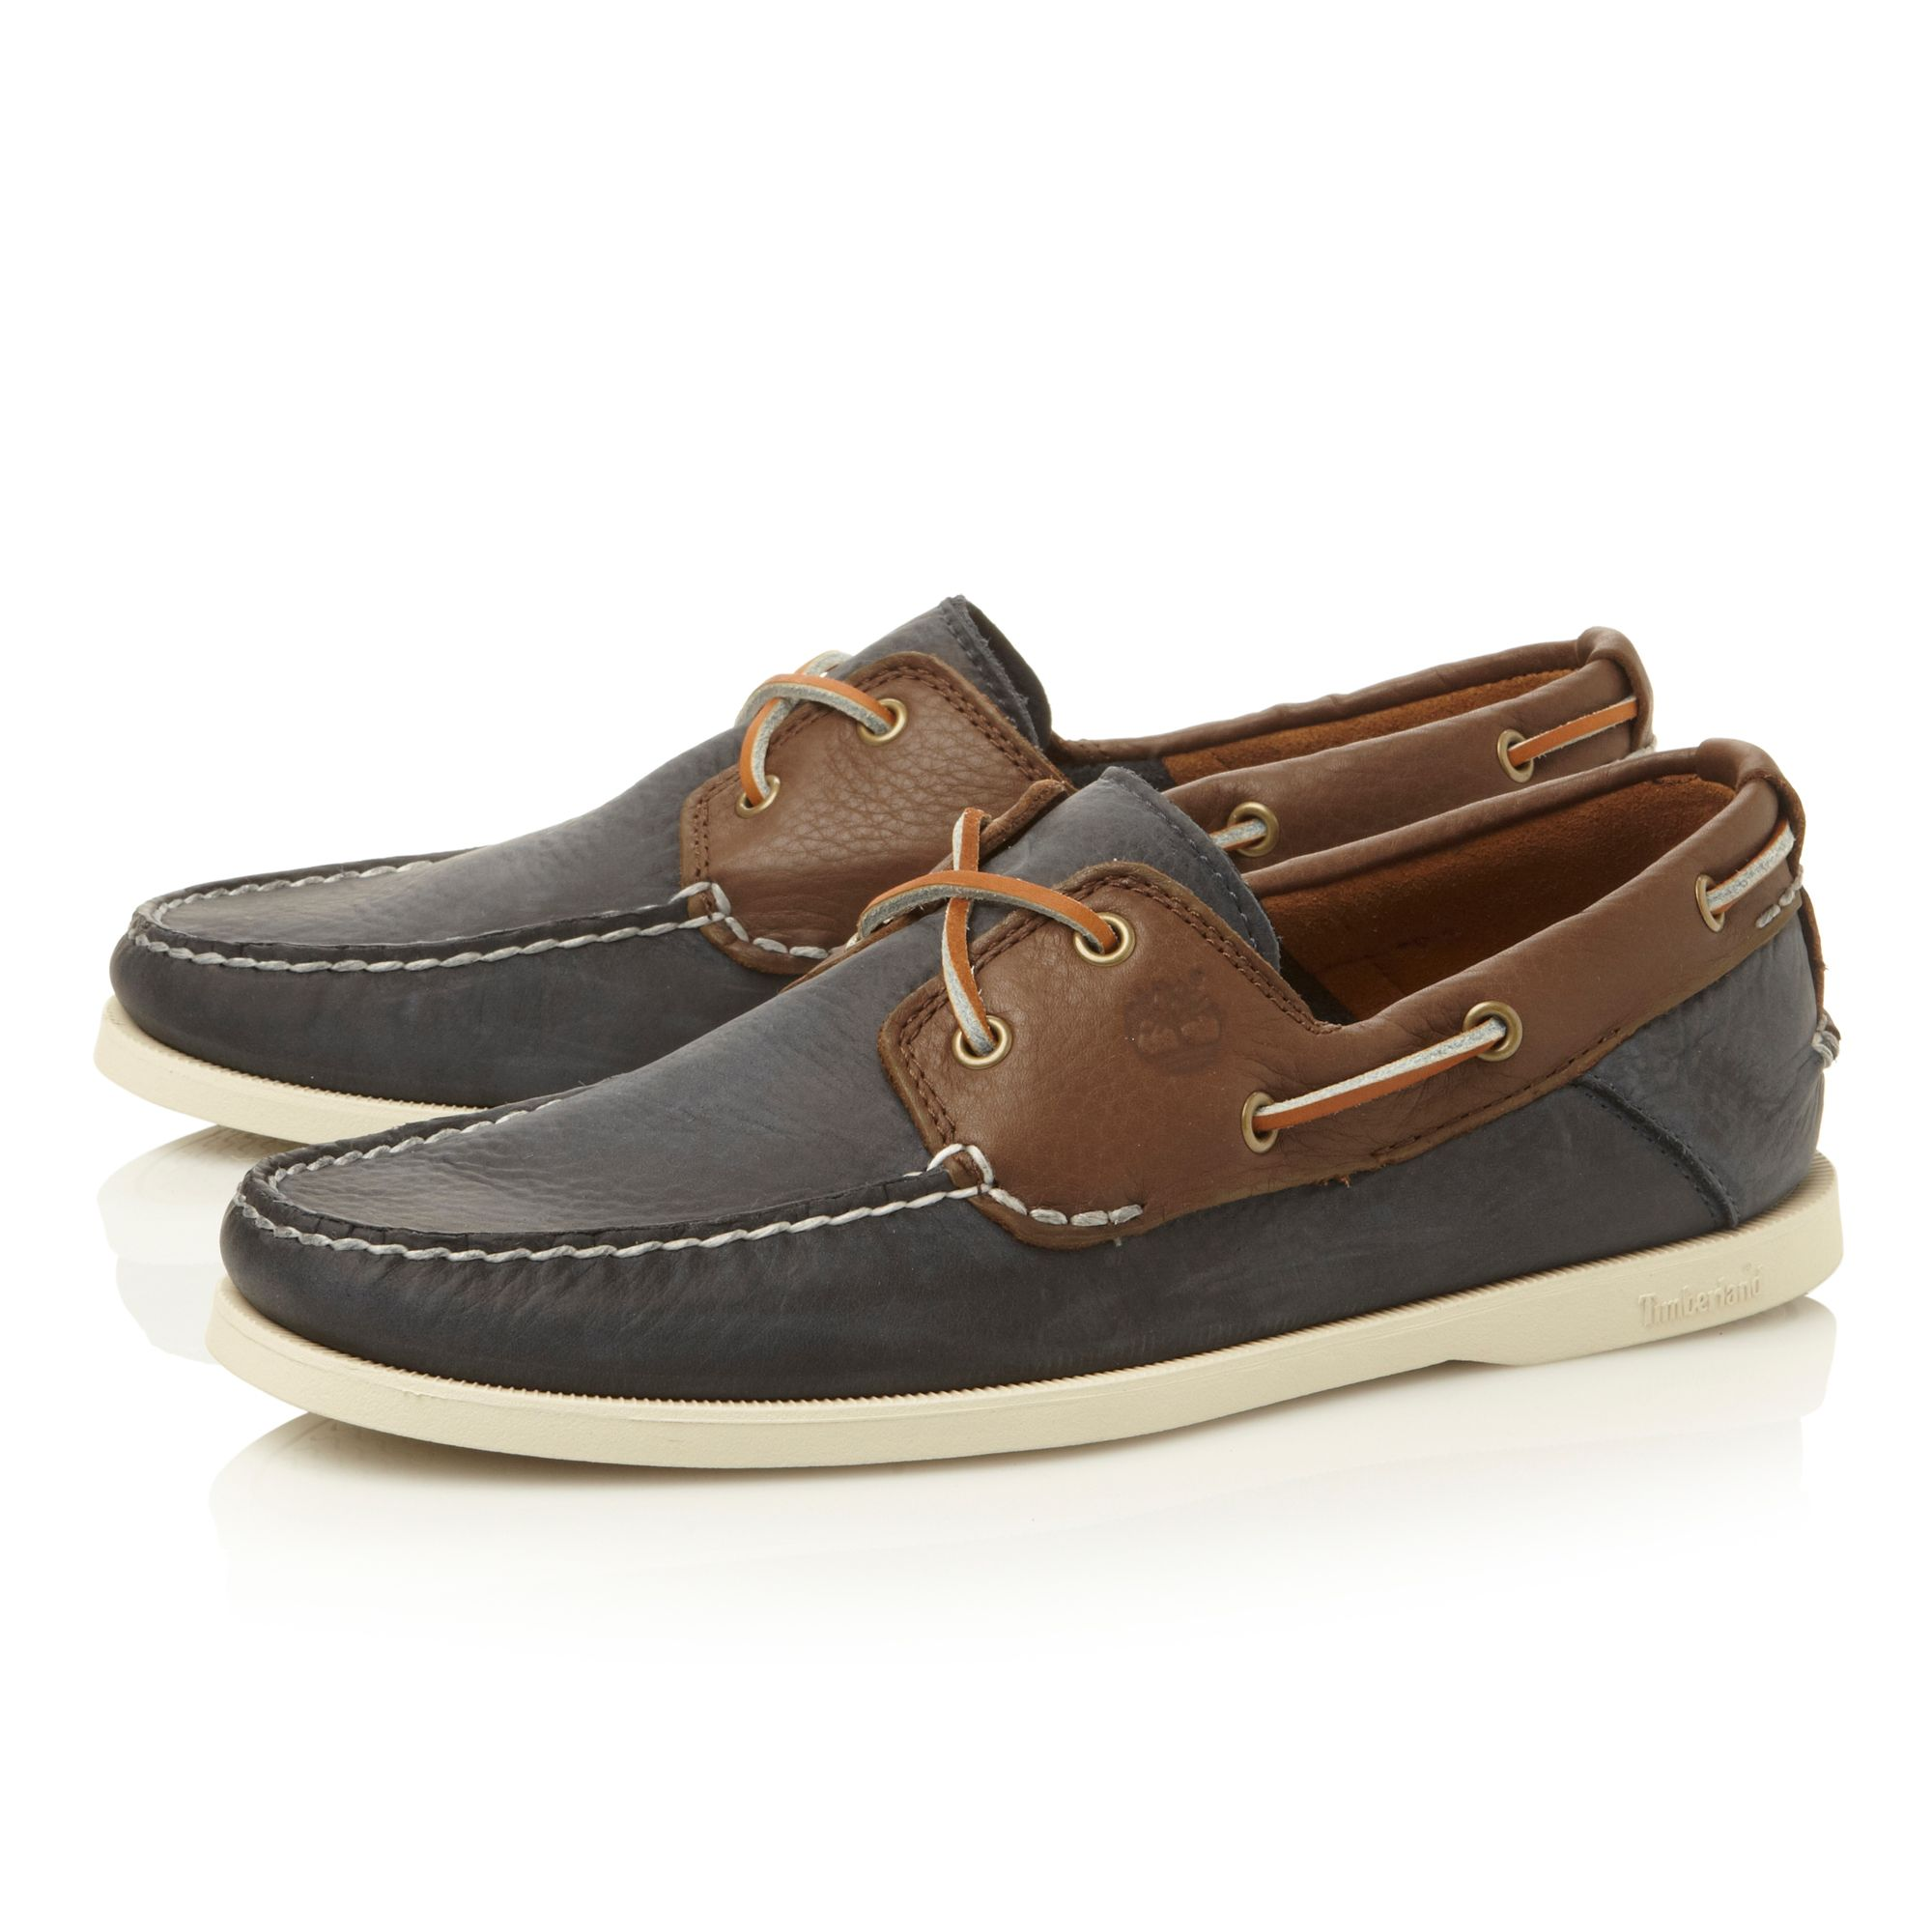 6365a lace up 2 eye contrast boat shoes